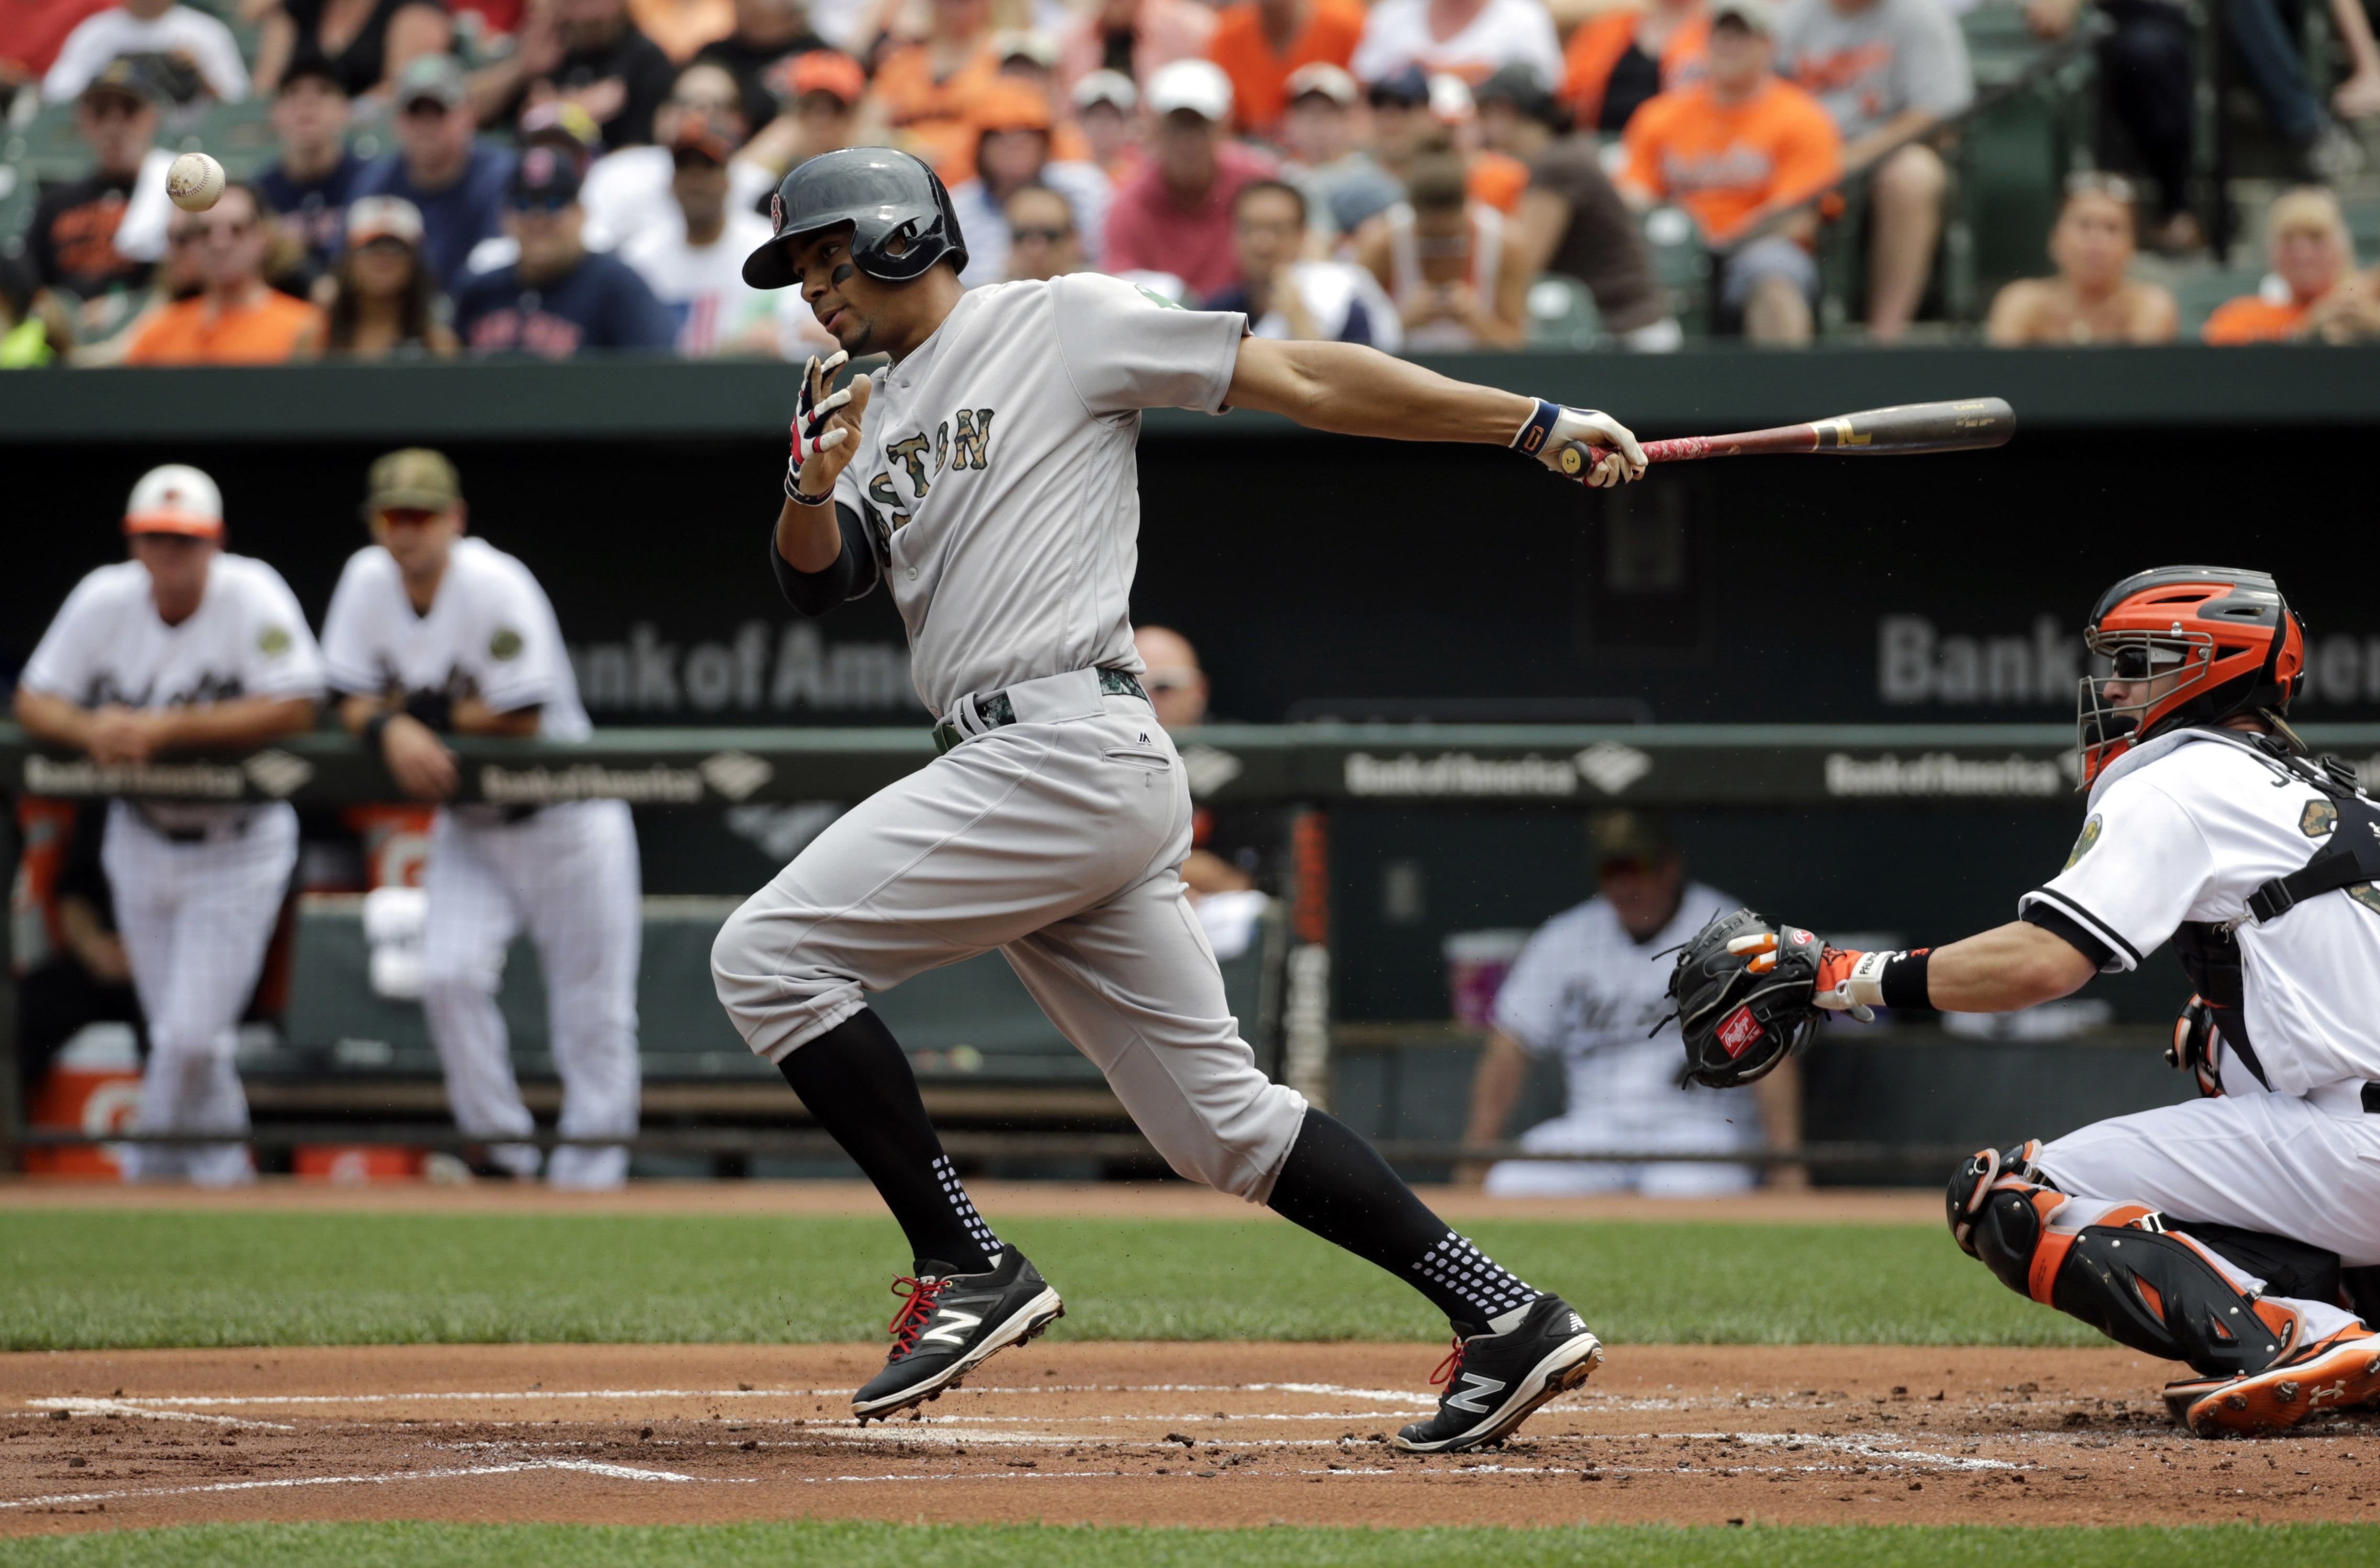 Boston Red Sox's Xander Bogaerts hits a sacrifice ground ball in front of Baltimore Orioles catcher Caleb Joseph in the first inning of a baseball game in Baltimore, Monday, May 30, 2016. Mookie Betts scored on the play. (AP Photo/Patrick Semansky)